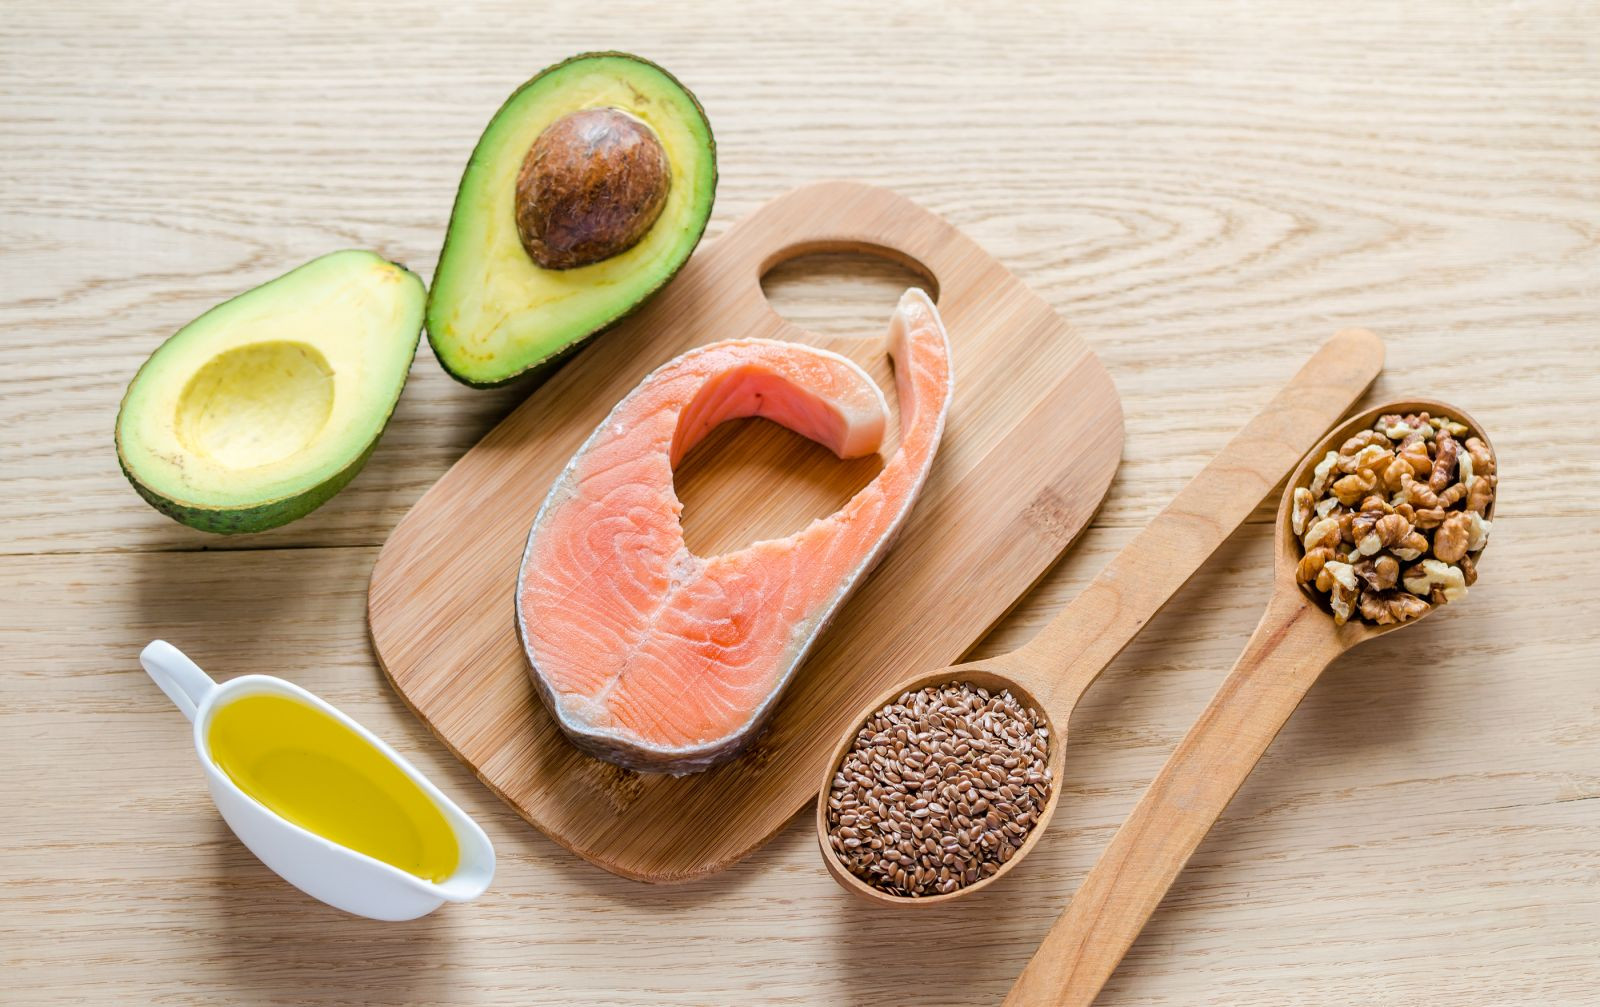 Good sources of monounsaturated and polysaturated fats are olive oil, peanut oil, canola oil, avocados, most nuts, high-oleic safflower and sunflower oils